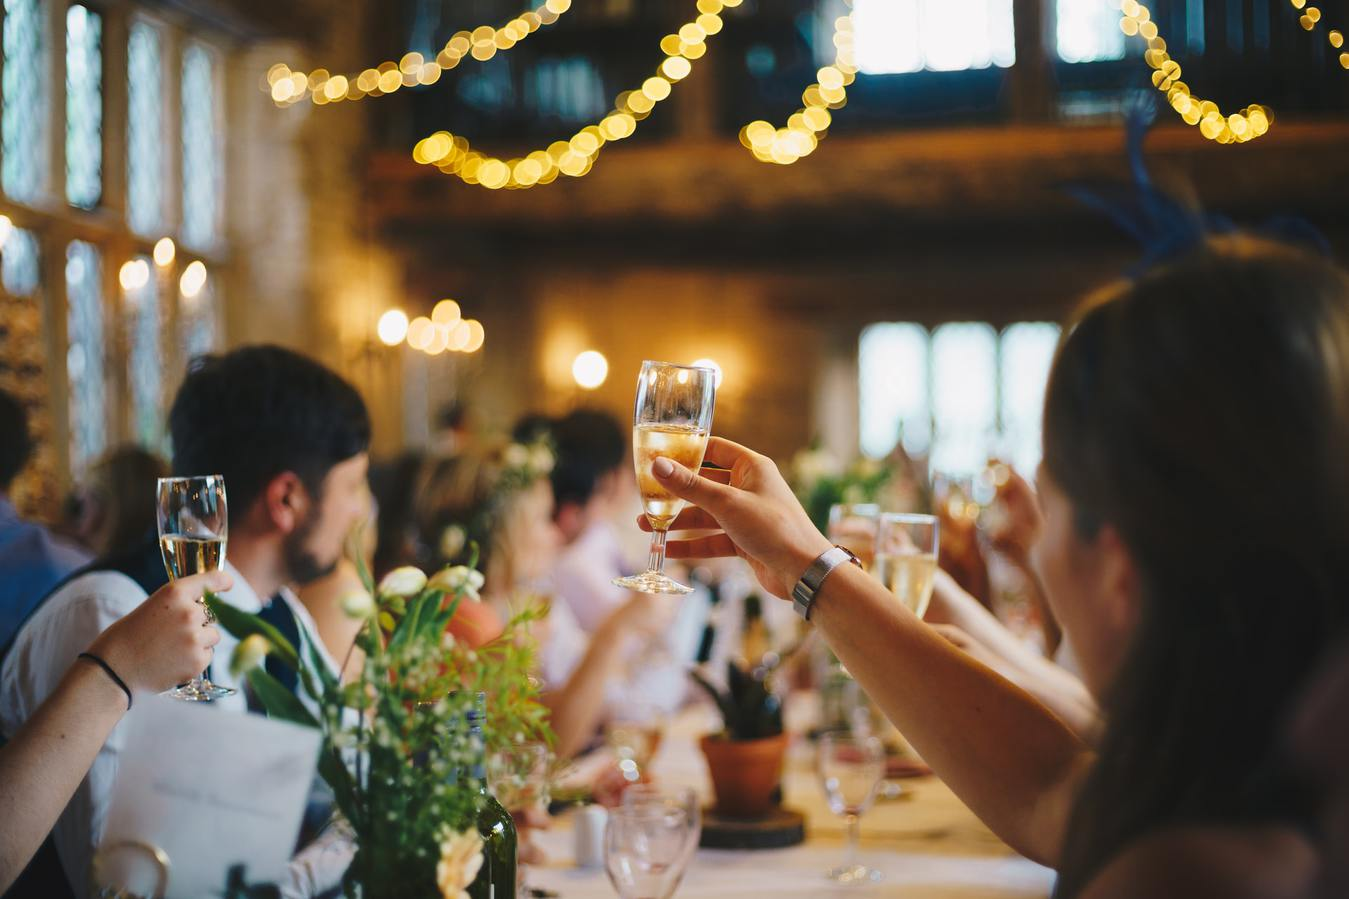 People cheering and raising a glass at a wedding